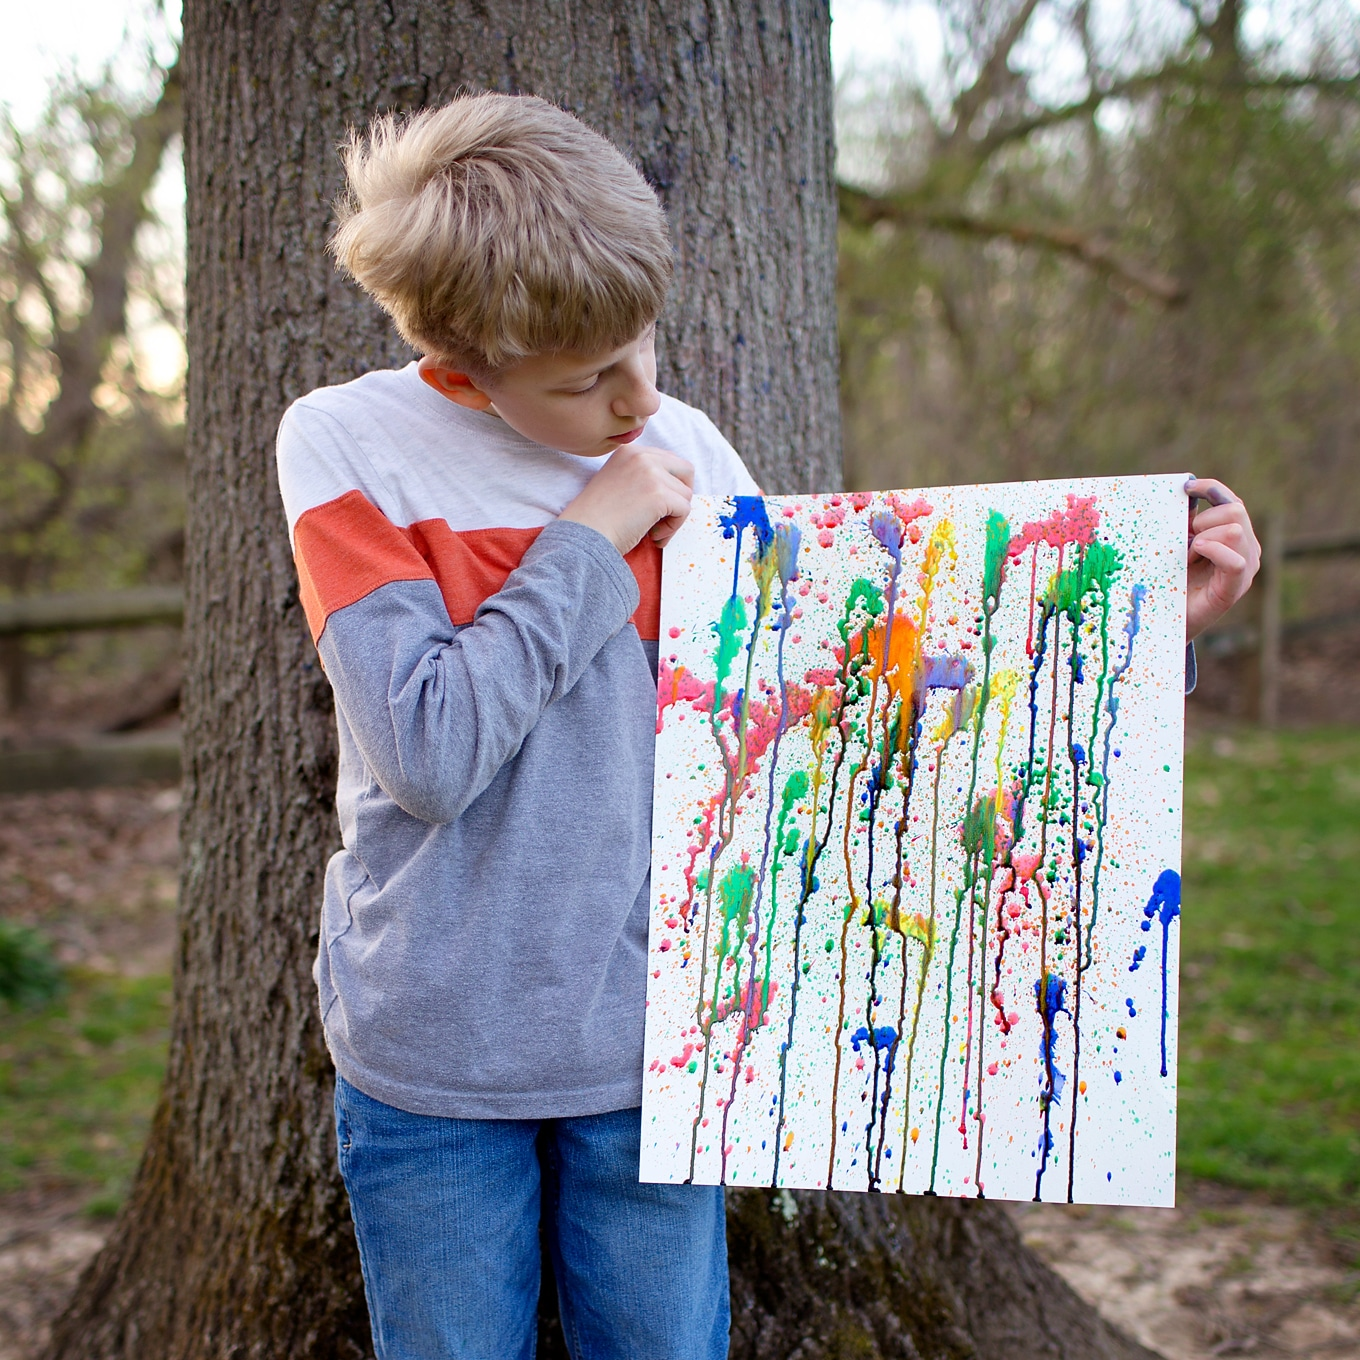 Boy Holding Squirt Painting